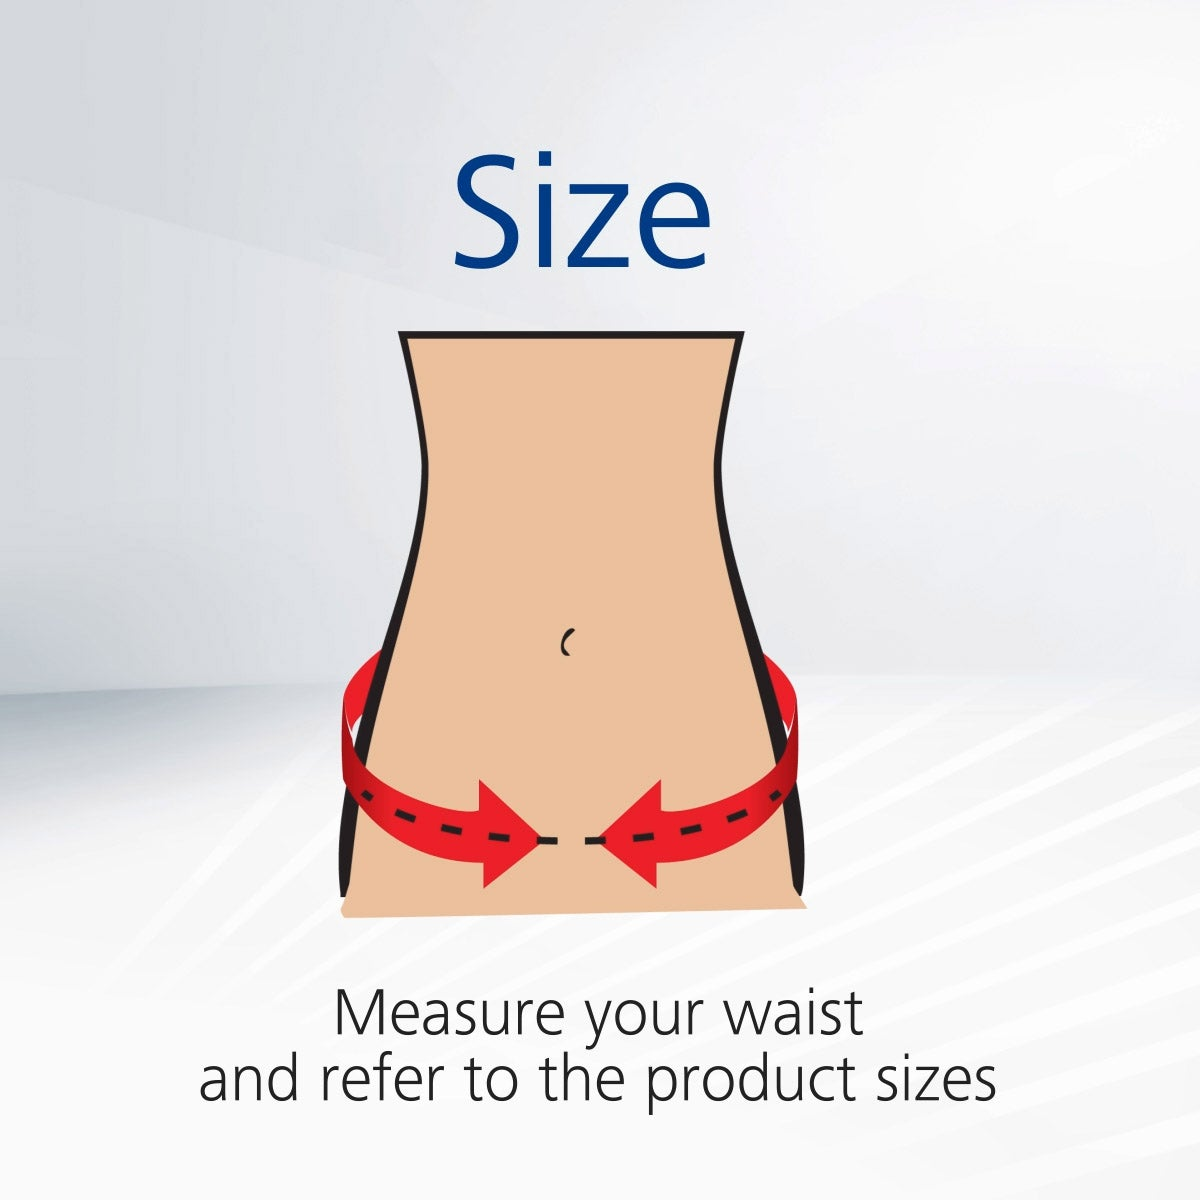 Ensure you have the right size